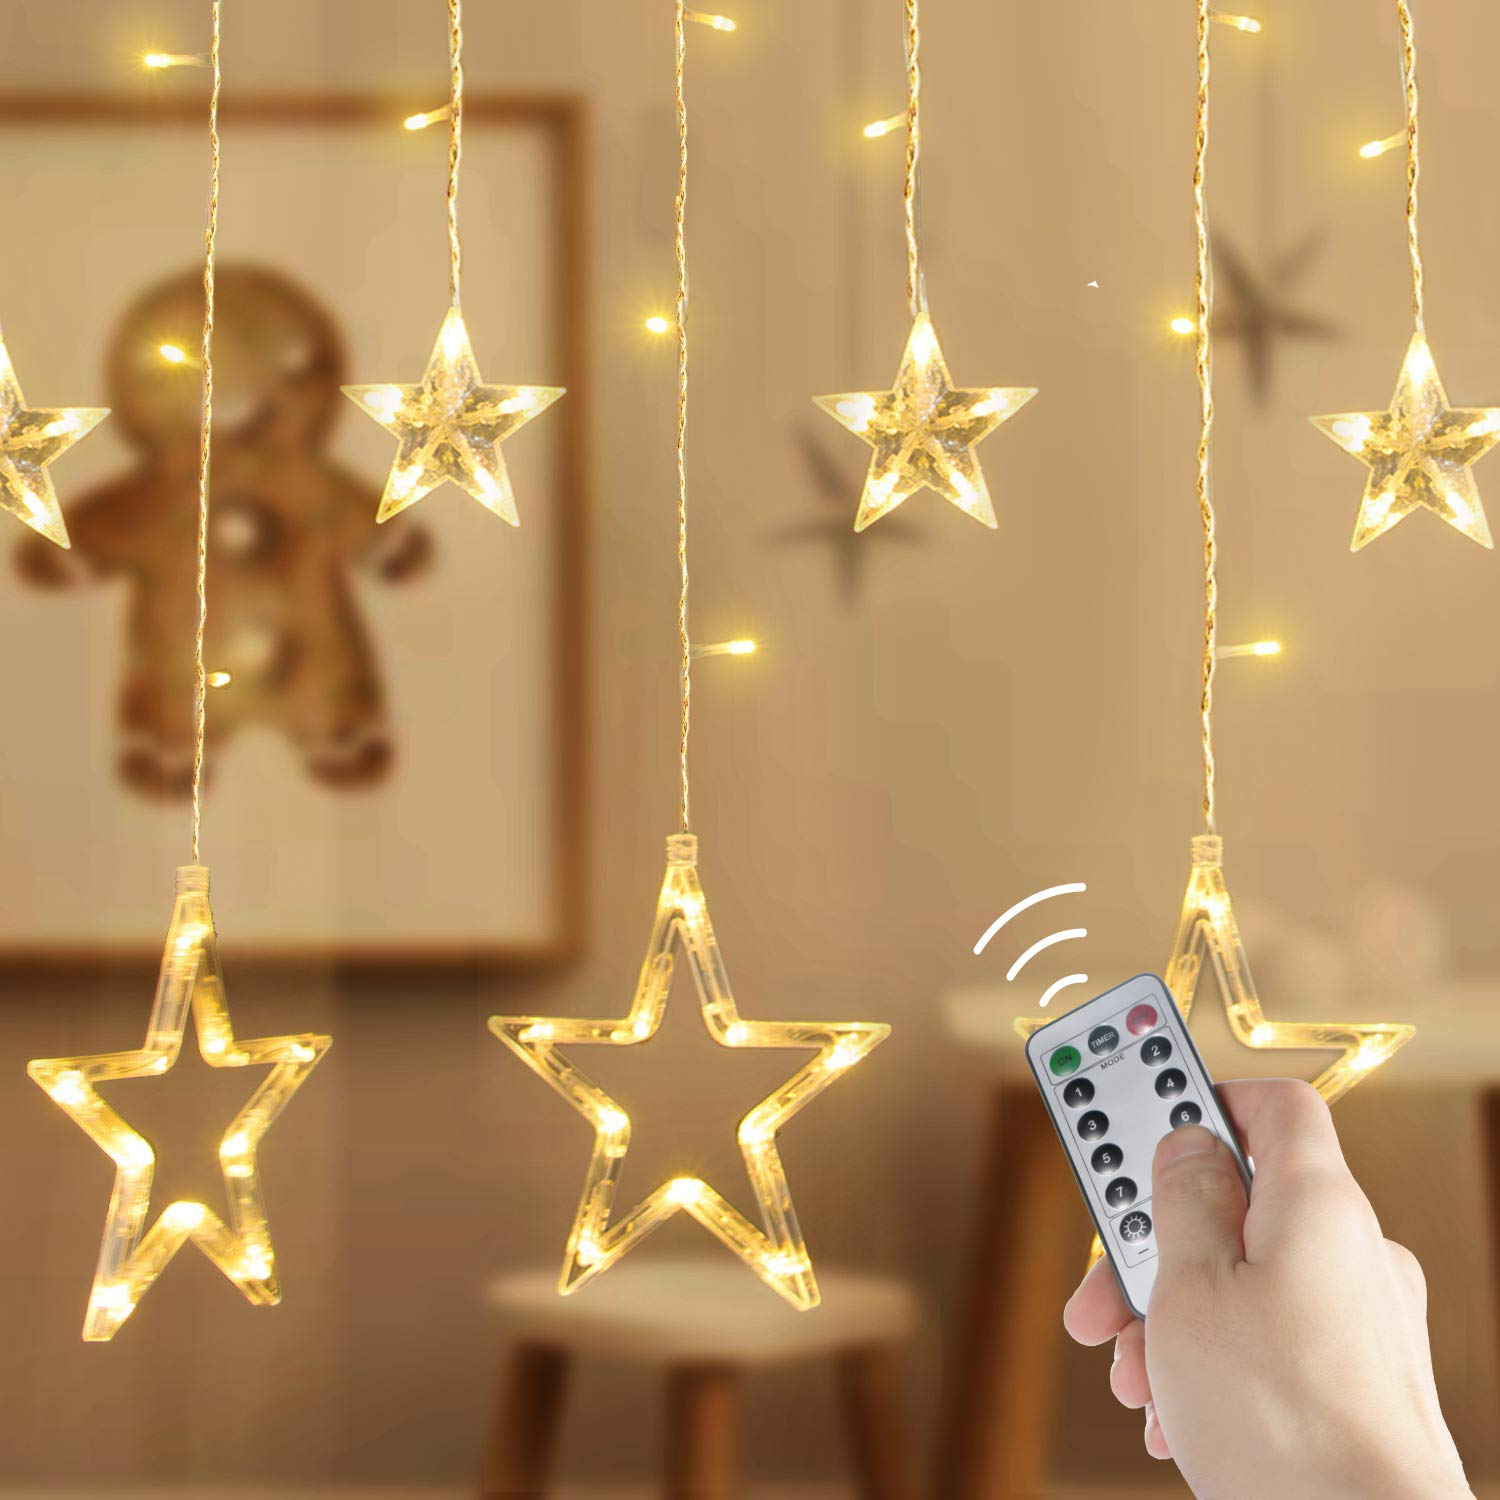 Brightown 138 LED 12 Stars Window Curtain String Lights with Remote and Timer, Connectable 8 Flashing Modes Decoration Lights for Indoor/Outdoor, Christmas, Wedding, Party, Patio Lawn, Pure White